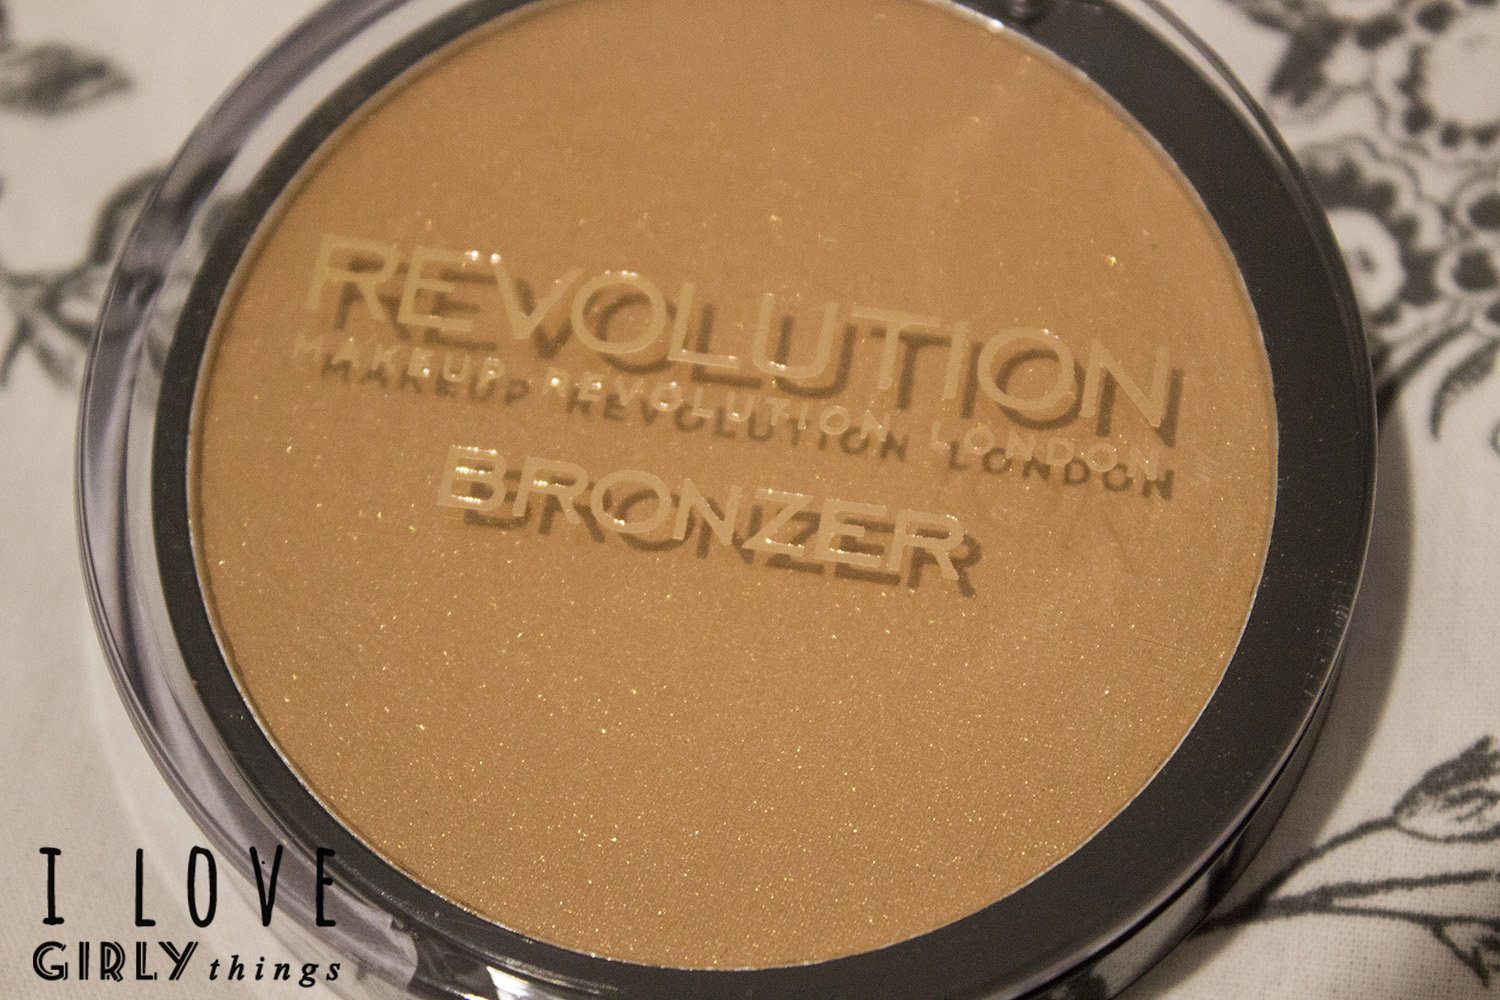 bronzer_makeup_revolution